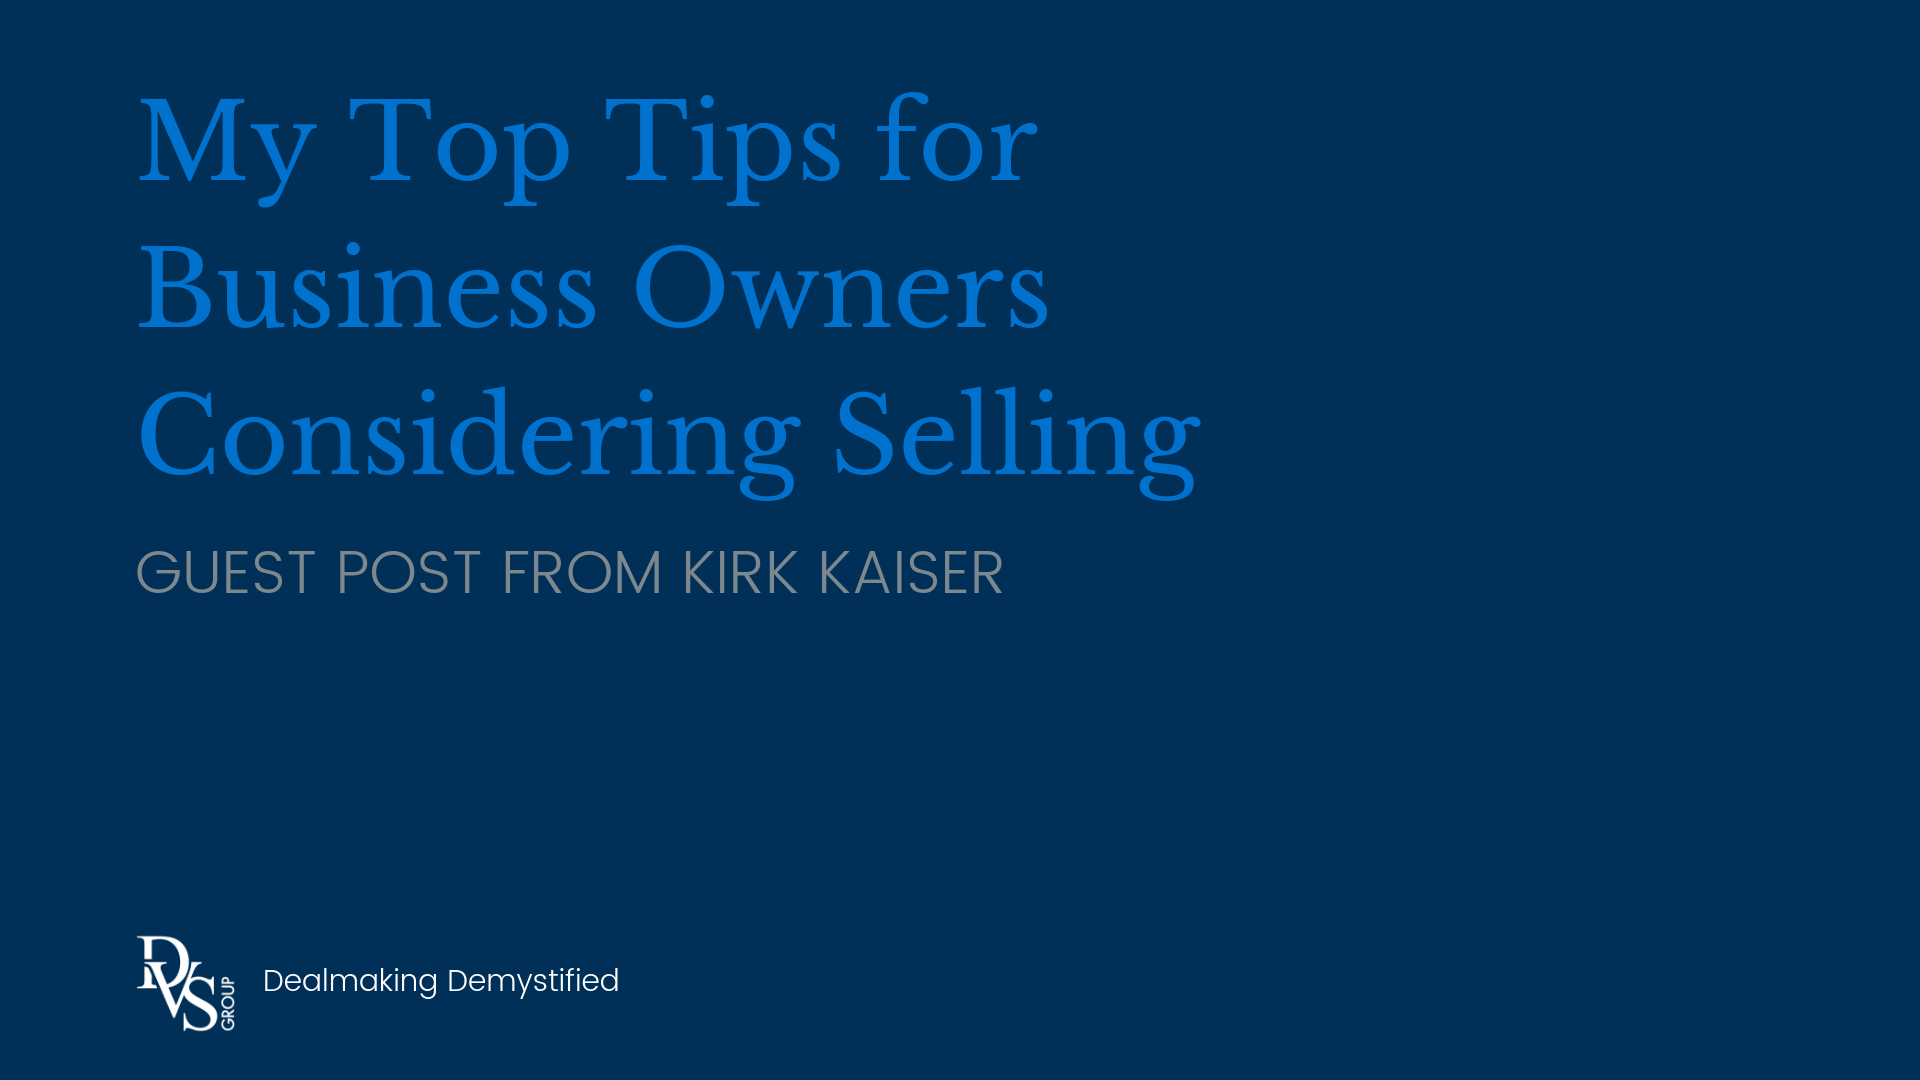 My Top Tips for Business Owners Considering Selling